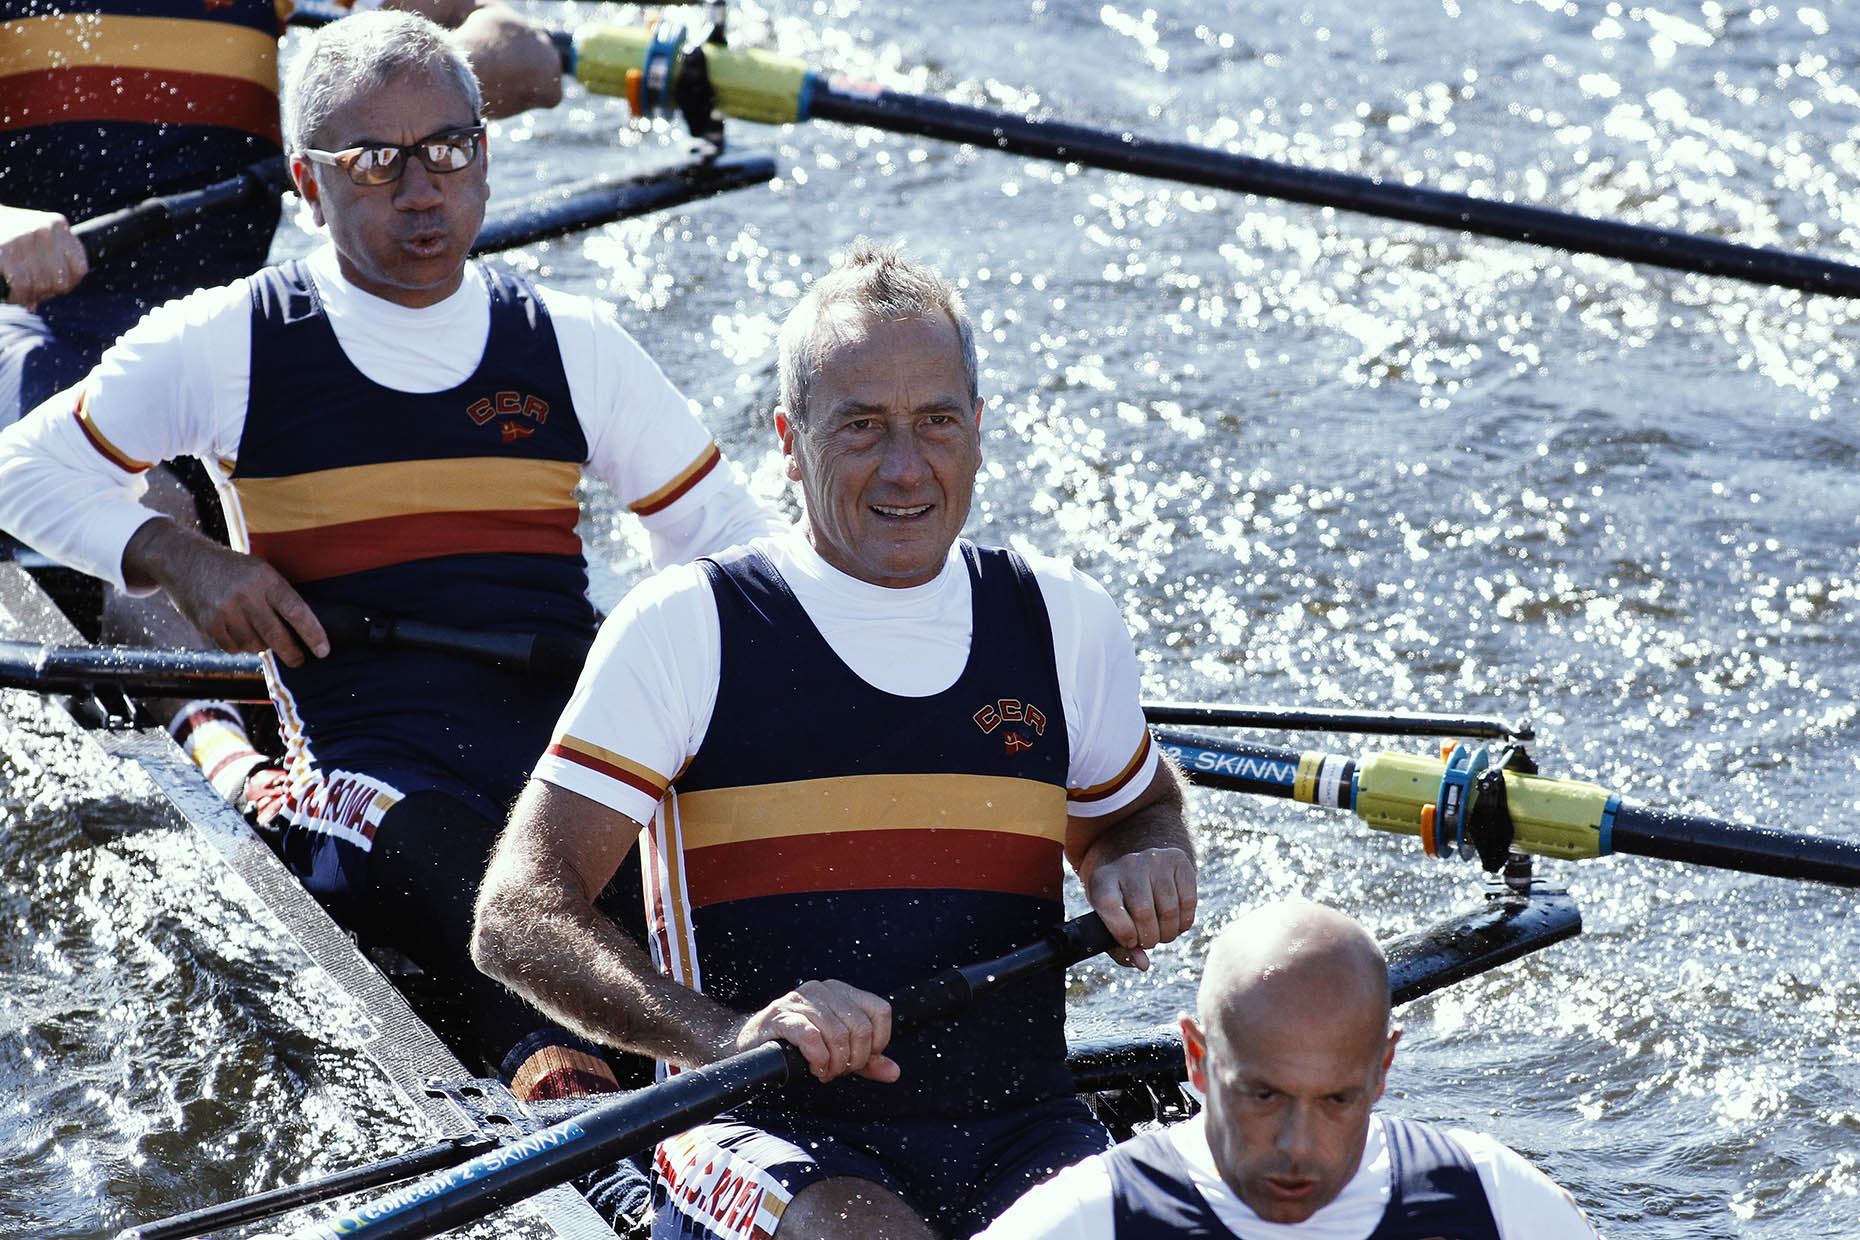 Masters Rowers